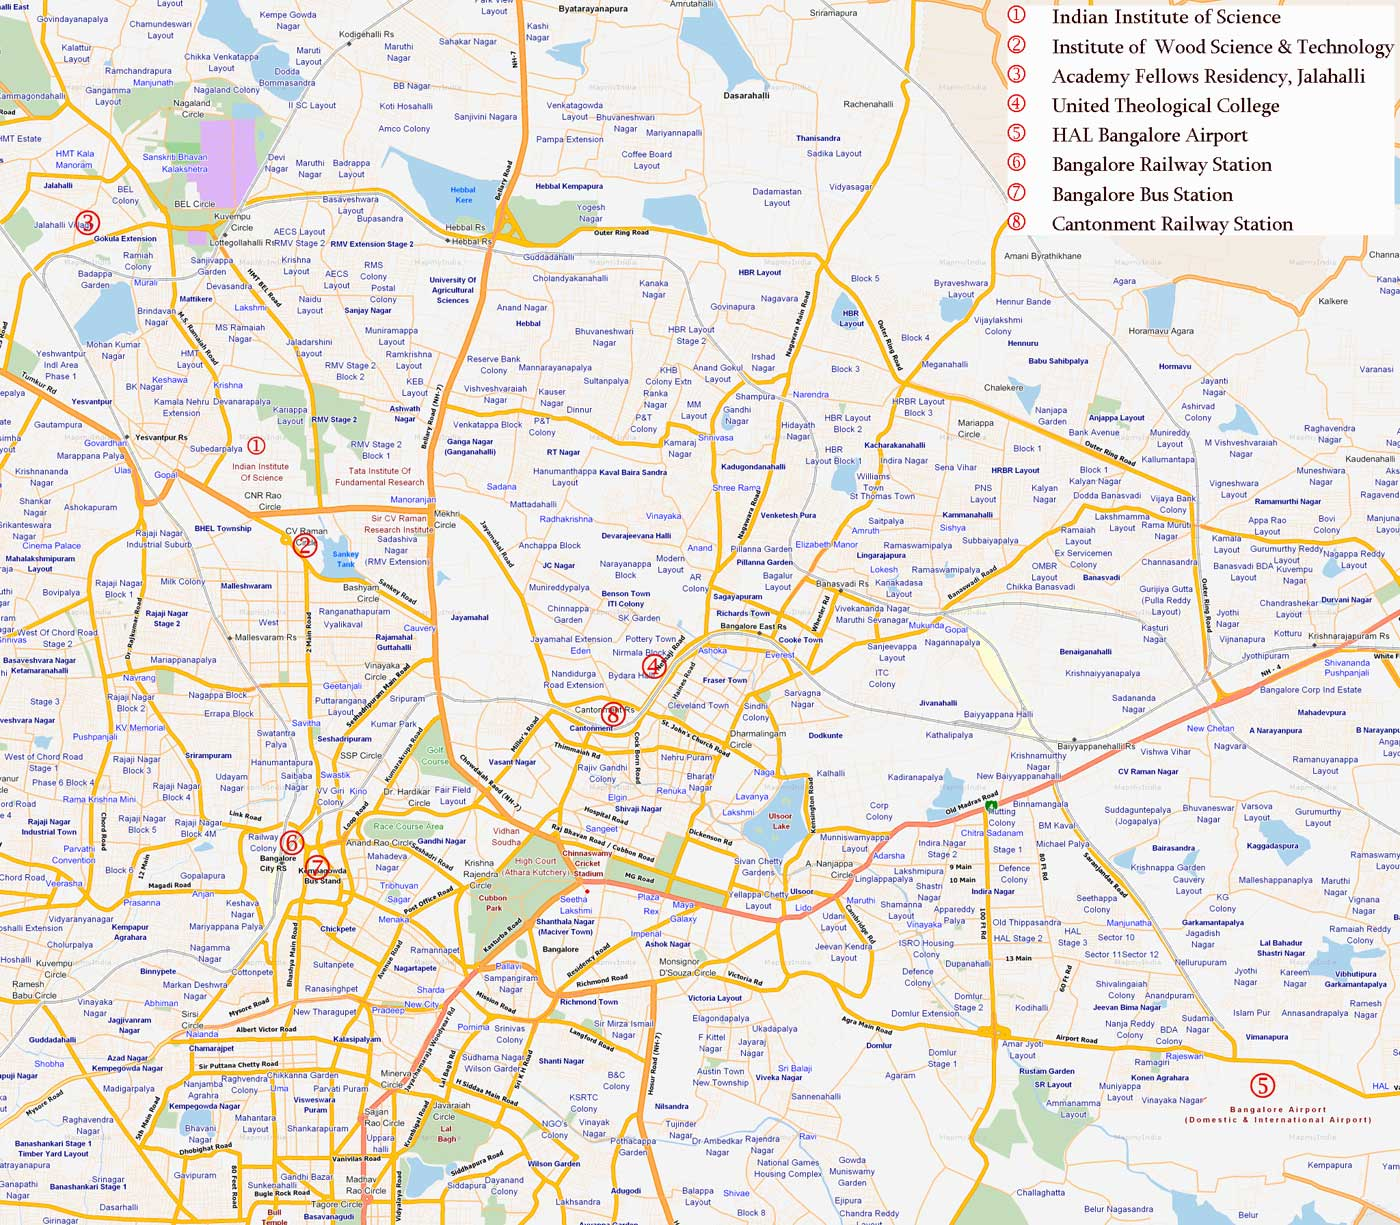 Bangalore maps. Click on the Bangalore Map to view it full screen